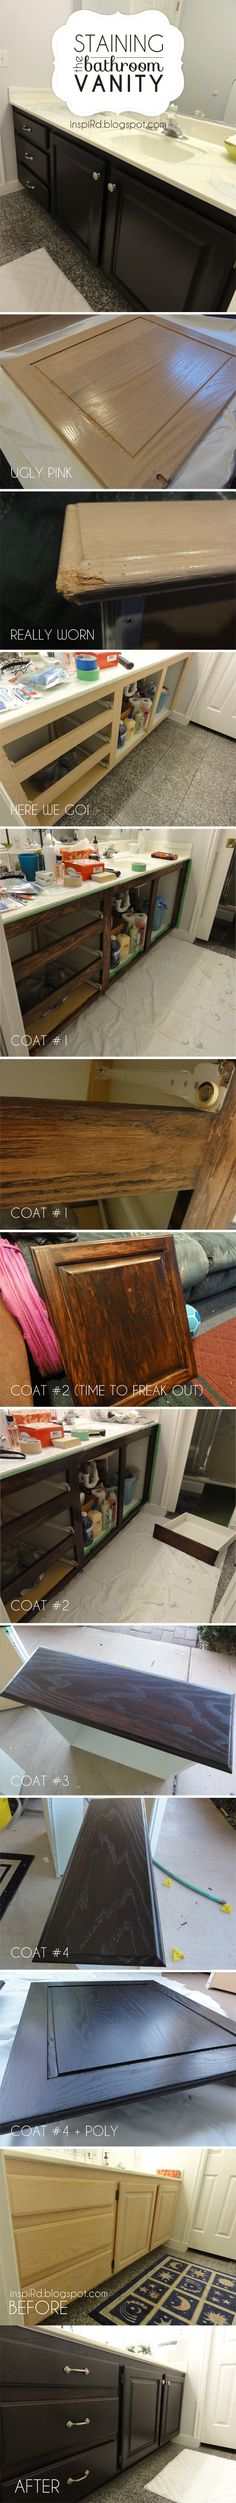 The process of staining bathroom cabinets. Click to see the full tutorial.